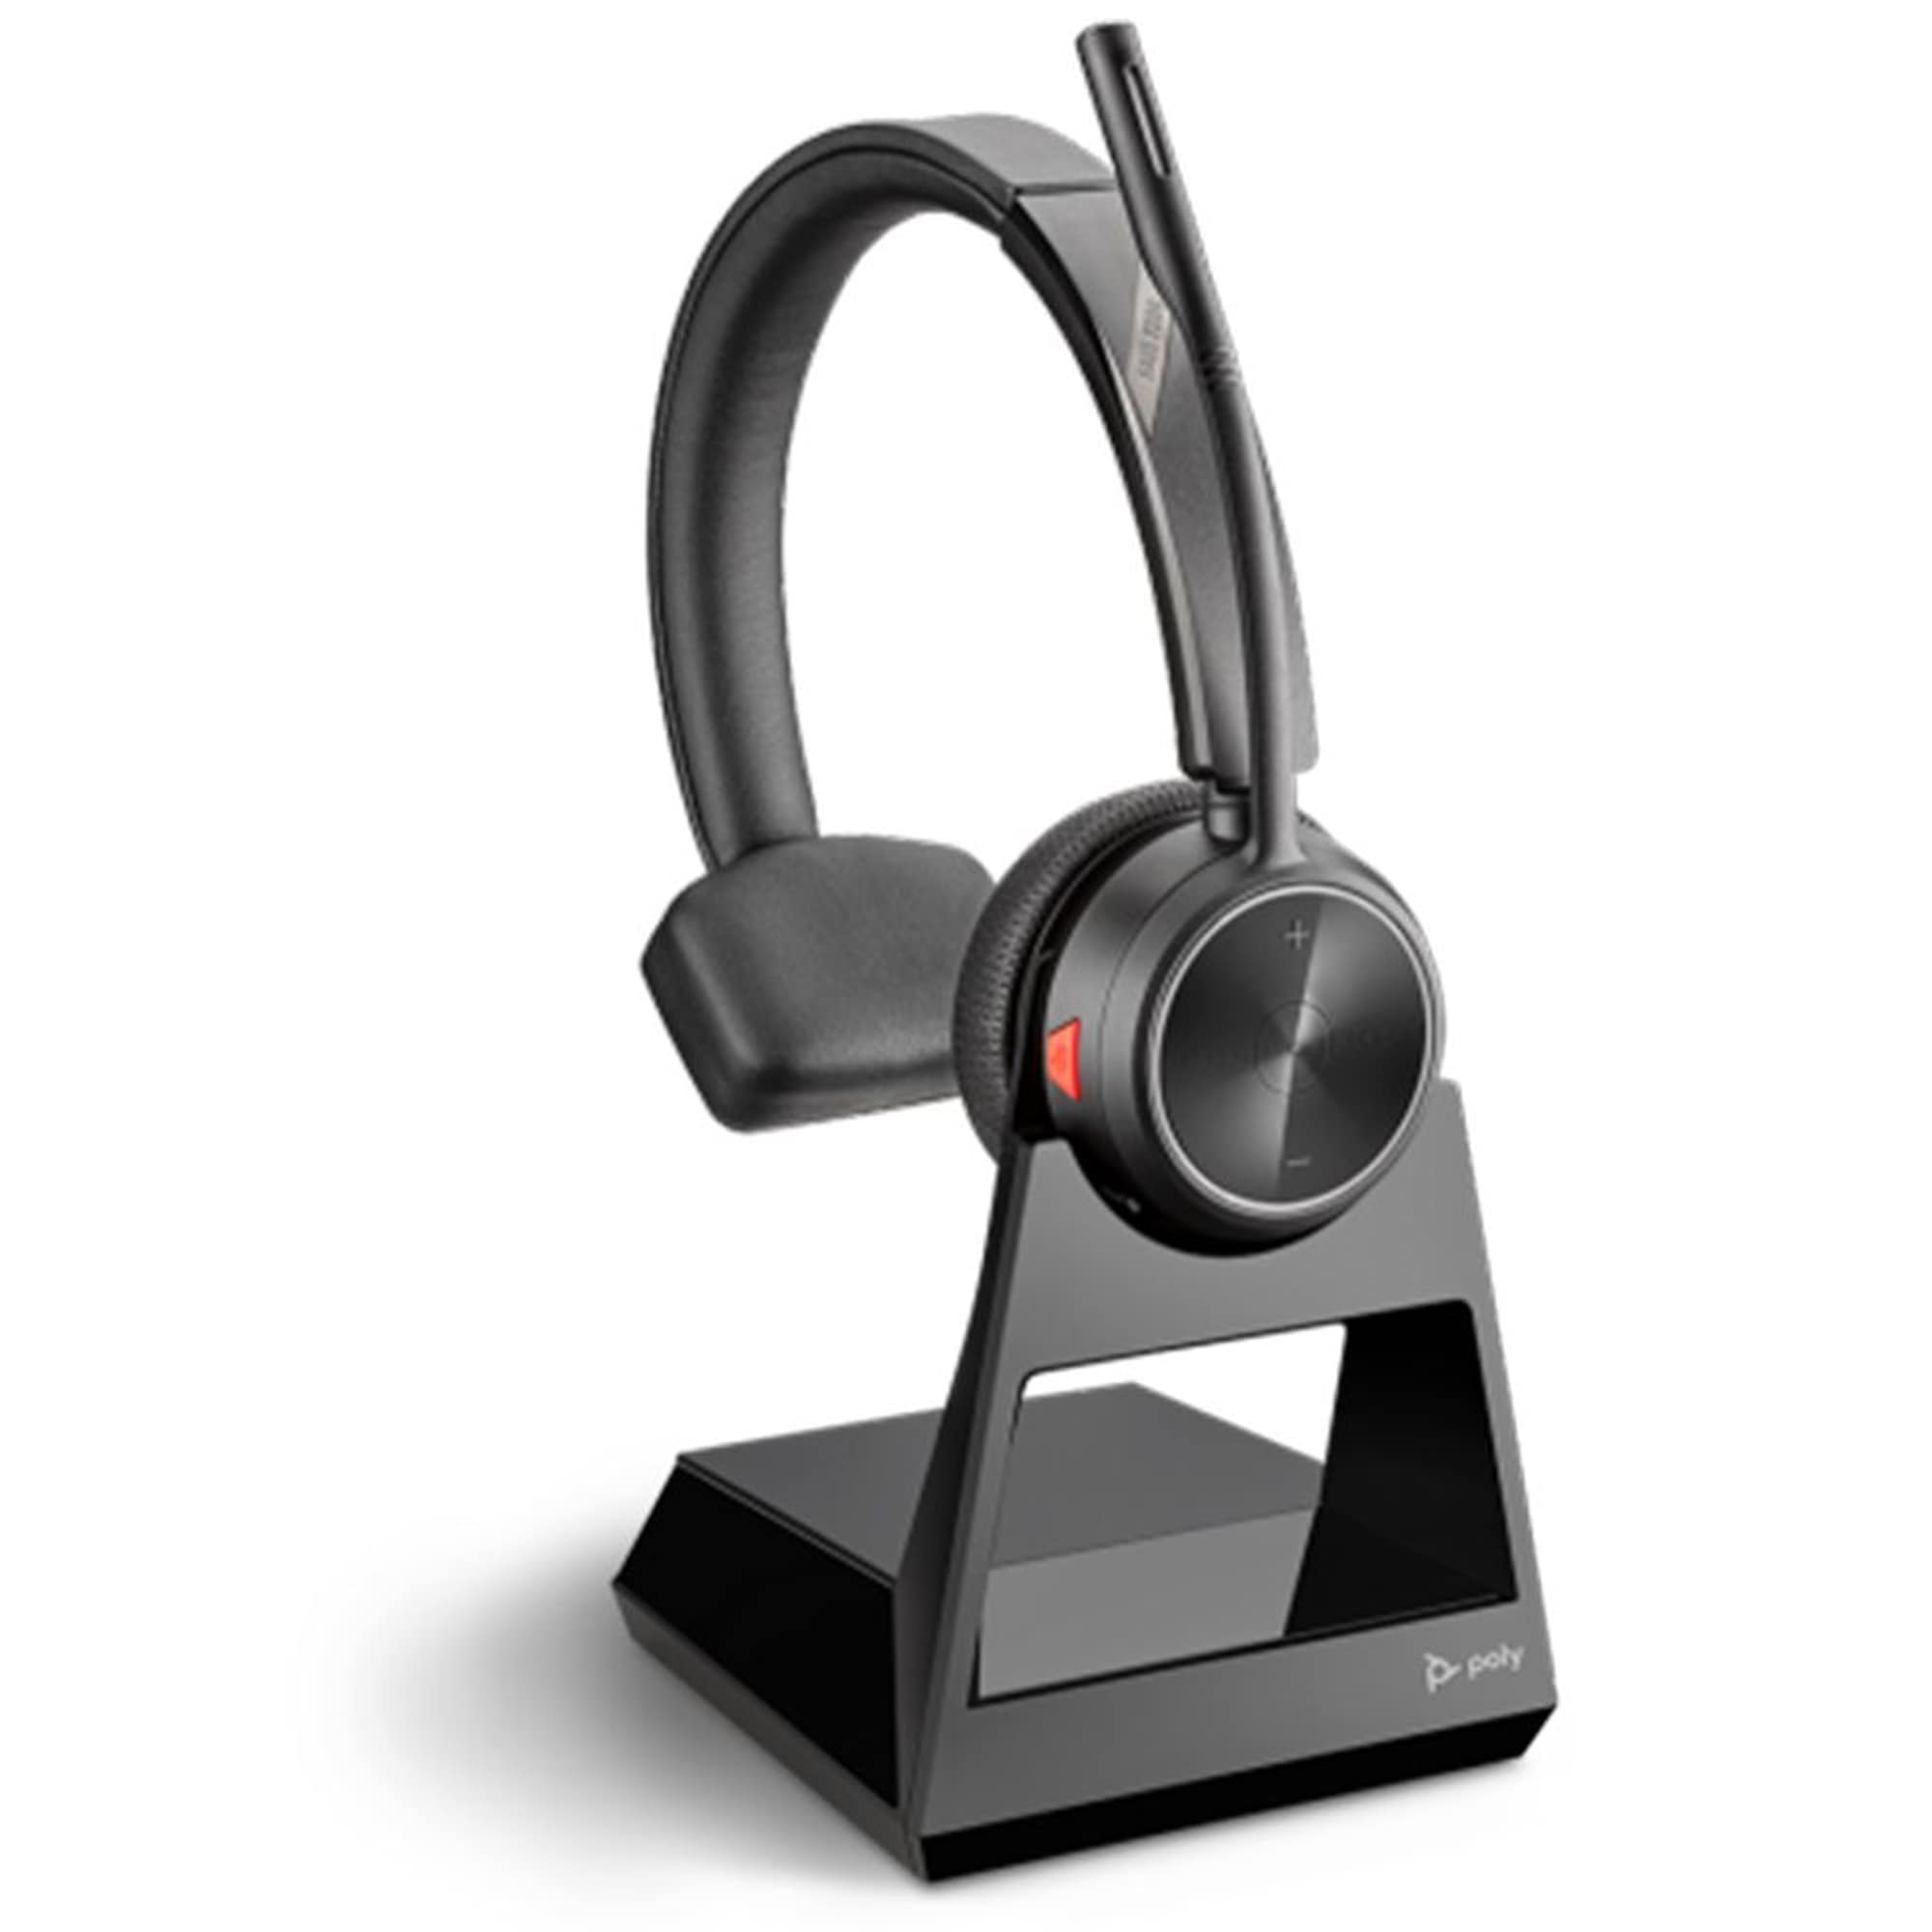 Plantronics Savi 7210 Office Headset (213010-02)